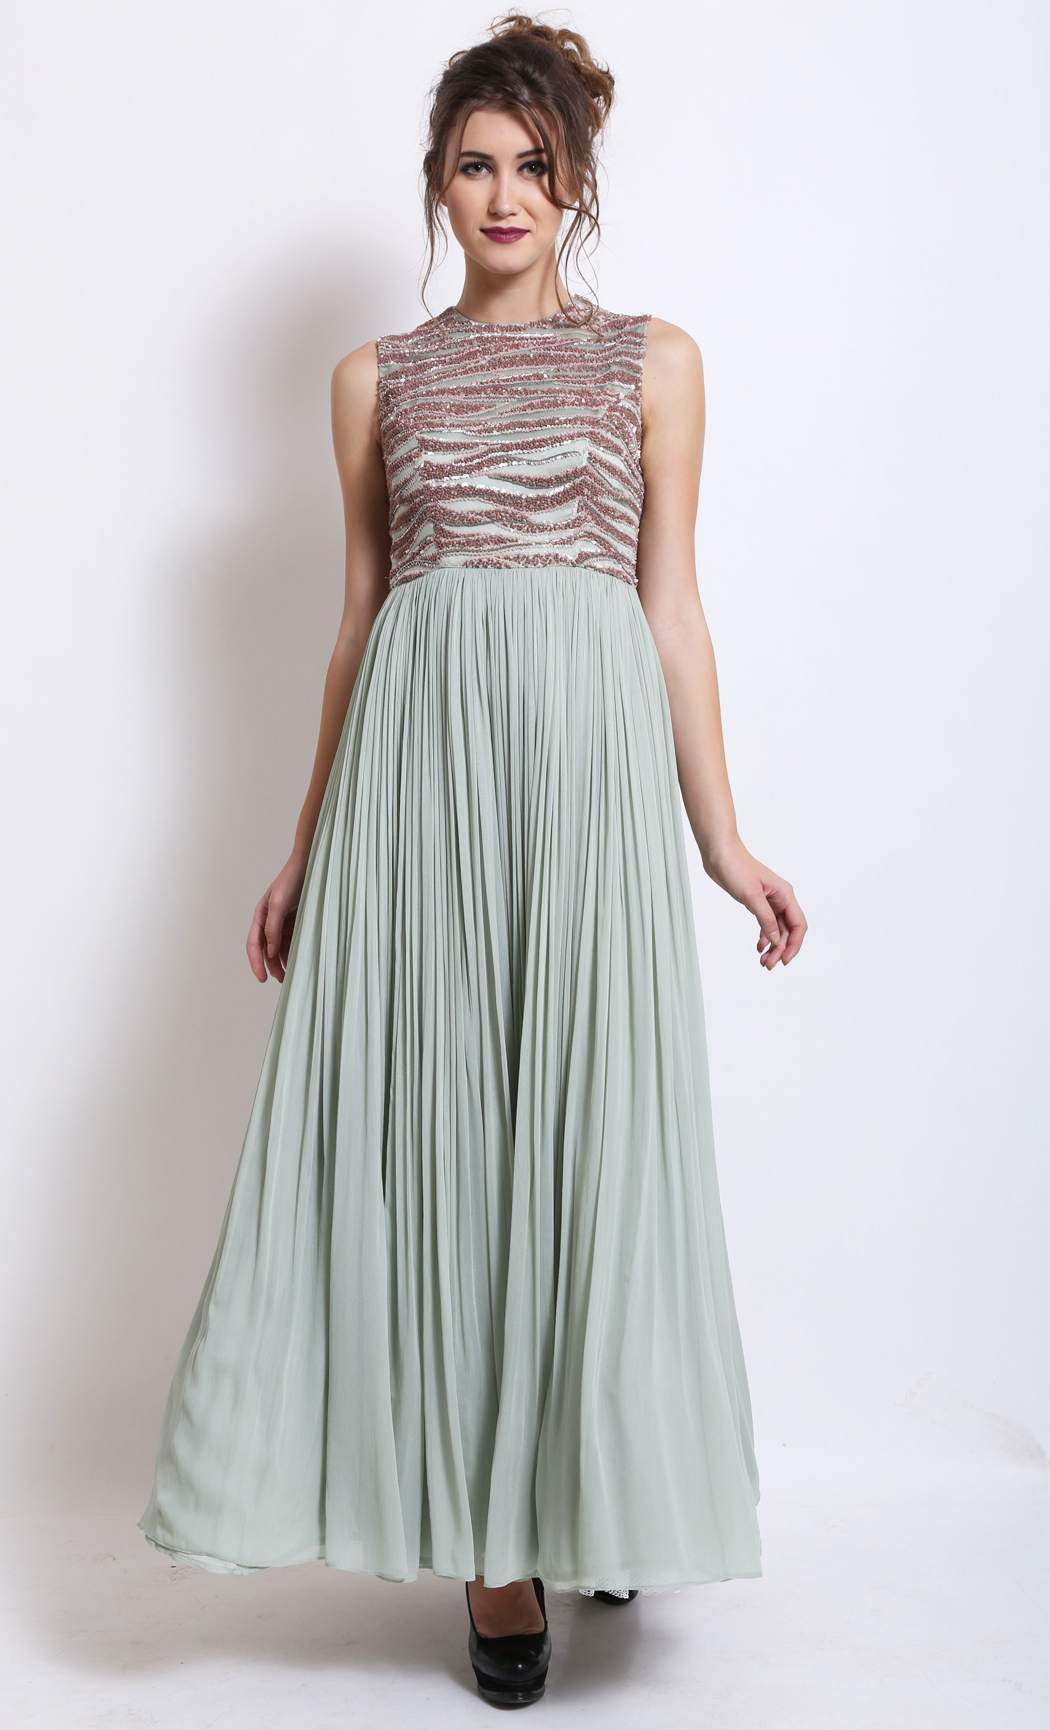 Mint Green Gathered Gown - Buy Online